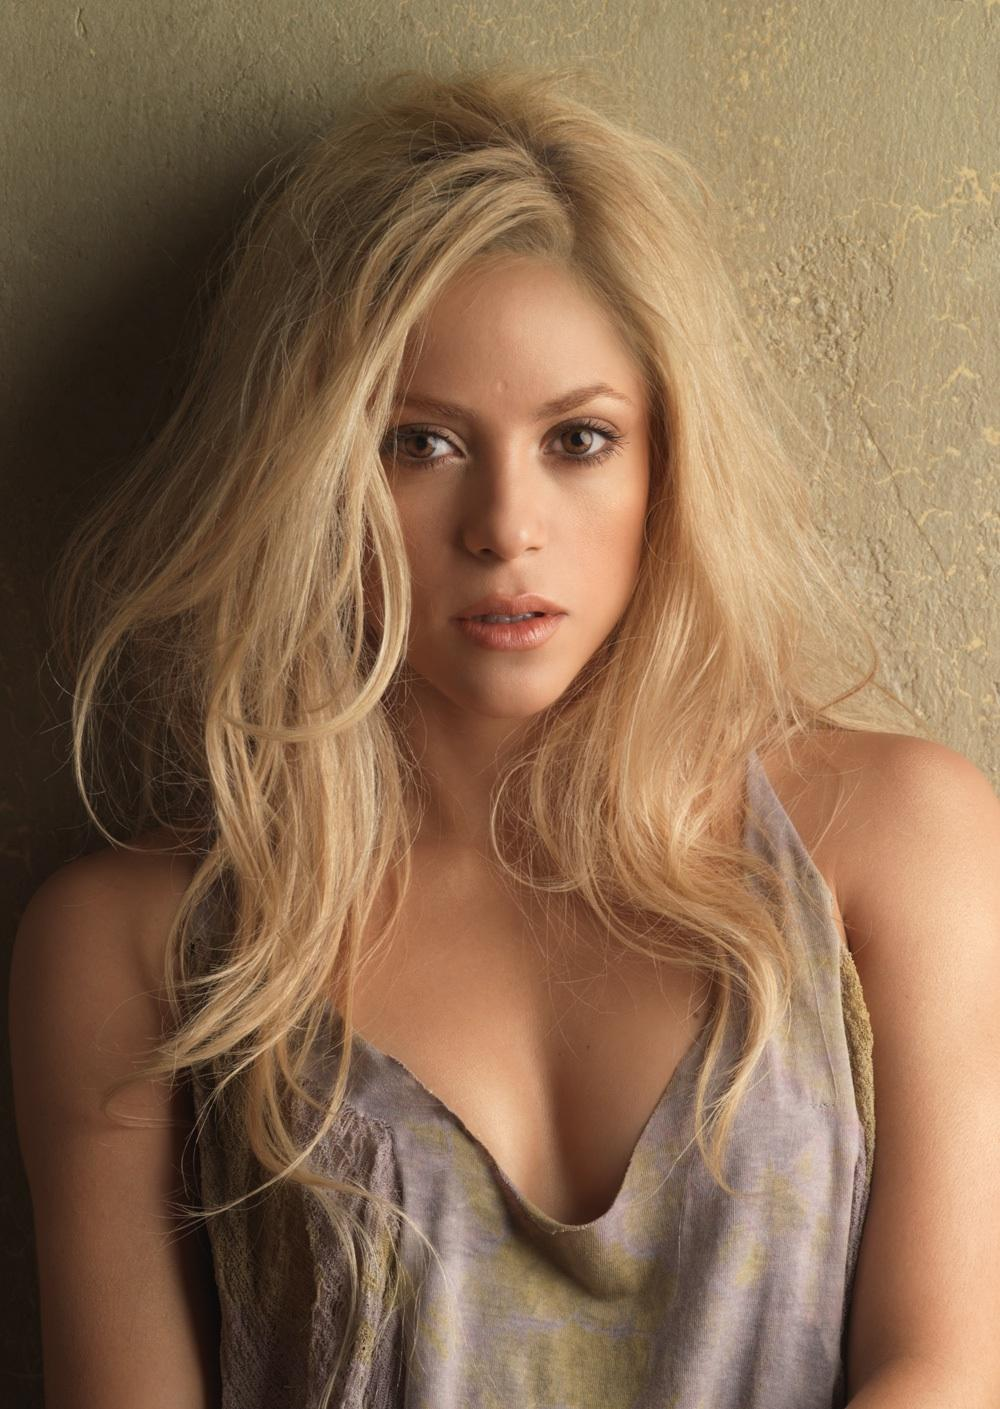 shakira is hotShakira